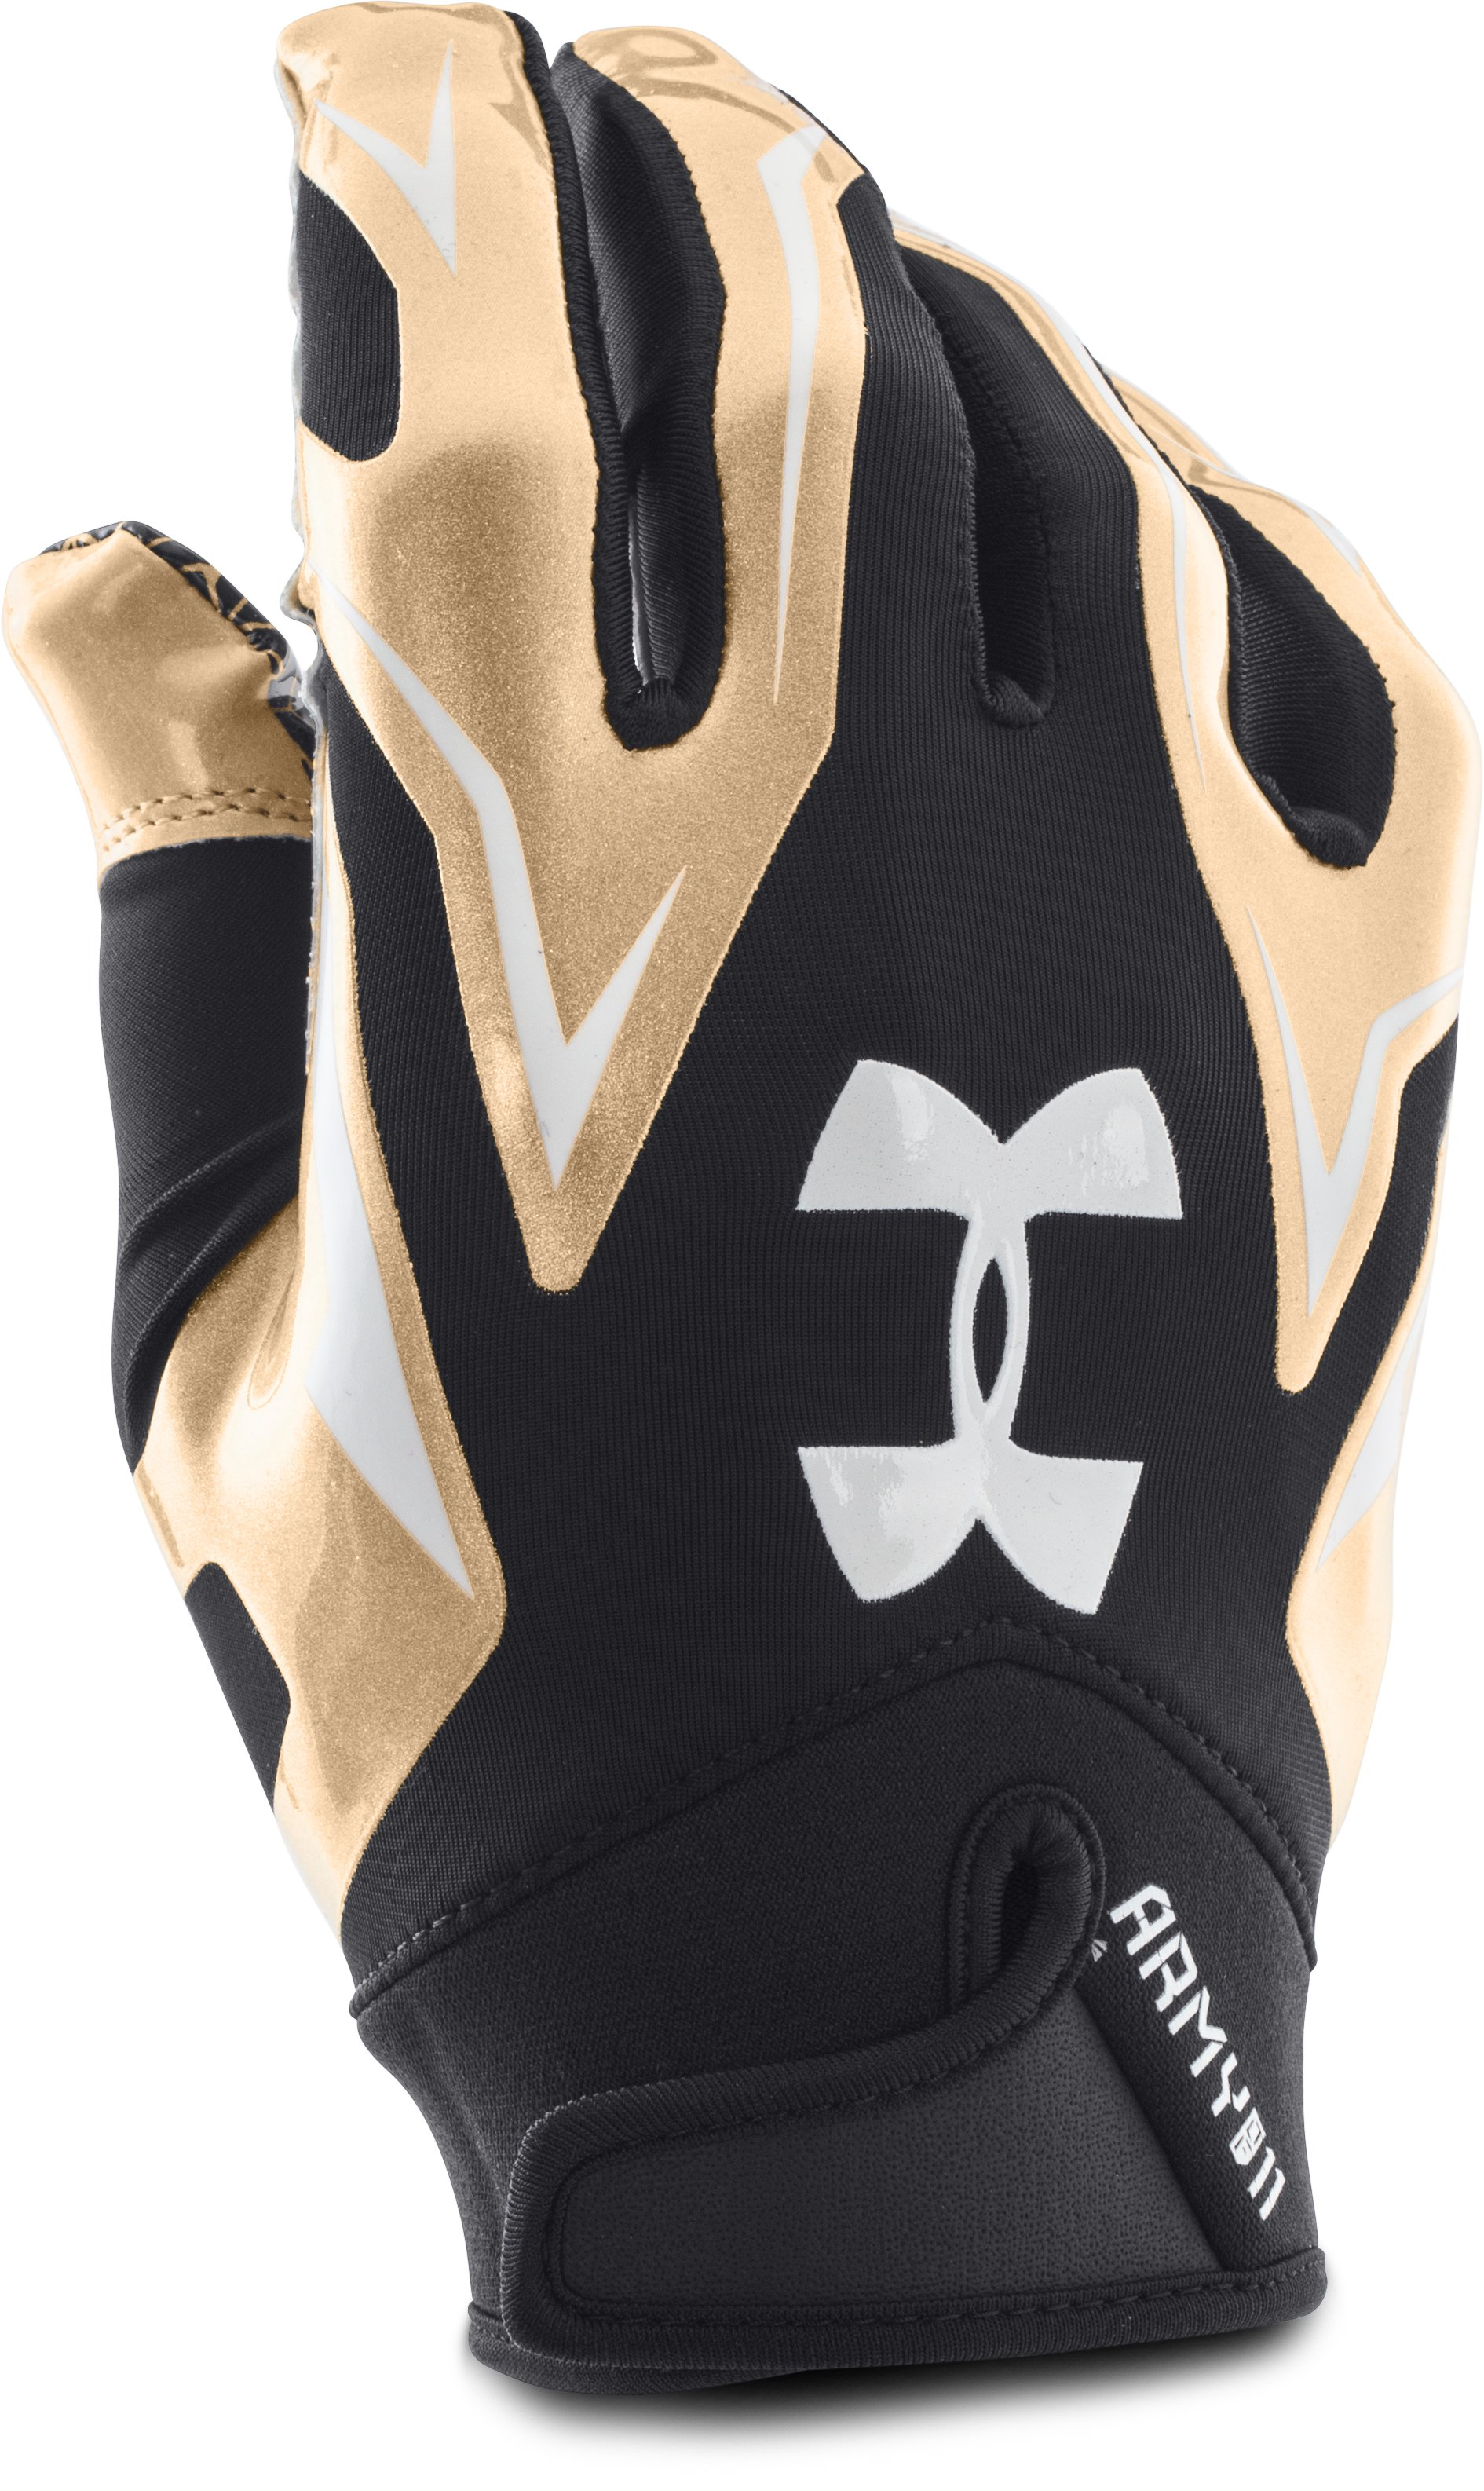 Men's UA Army of 11 F4 Football Gloves, Black